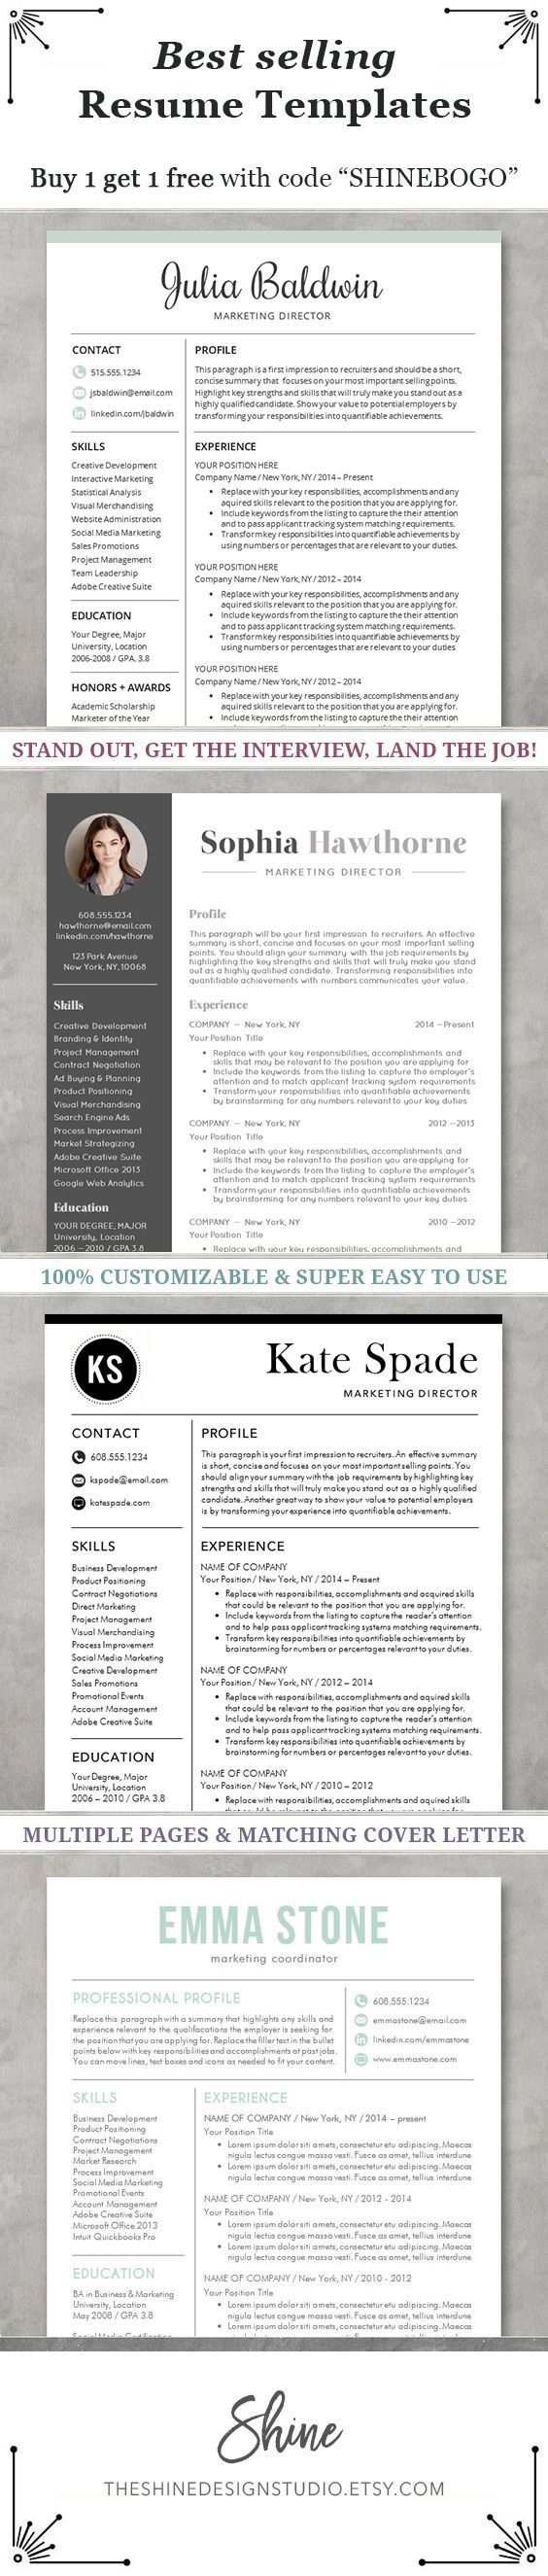 ★ Instant Download ★ Resume Templates / CV Template | Elegant Resume Designs for Word, Pages #shineresumes